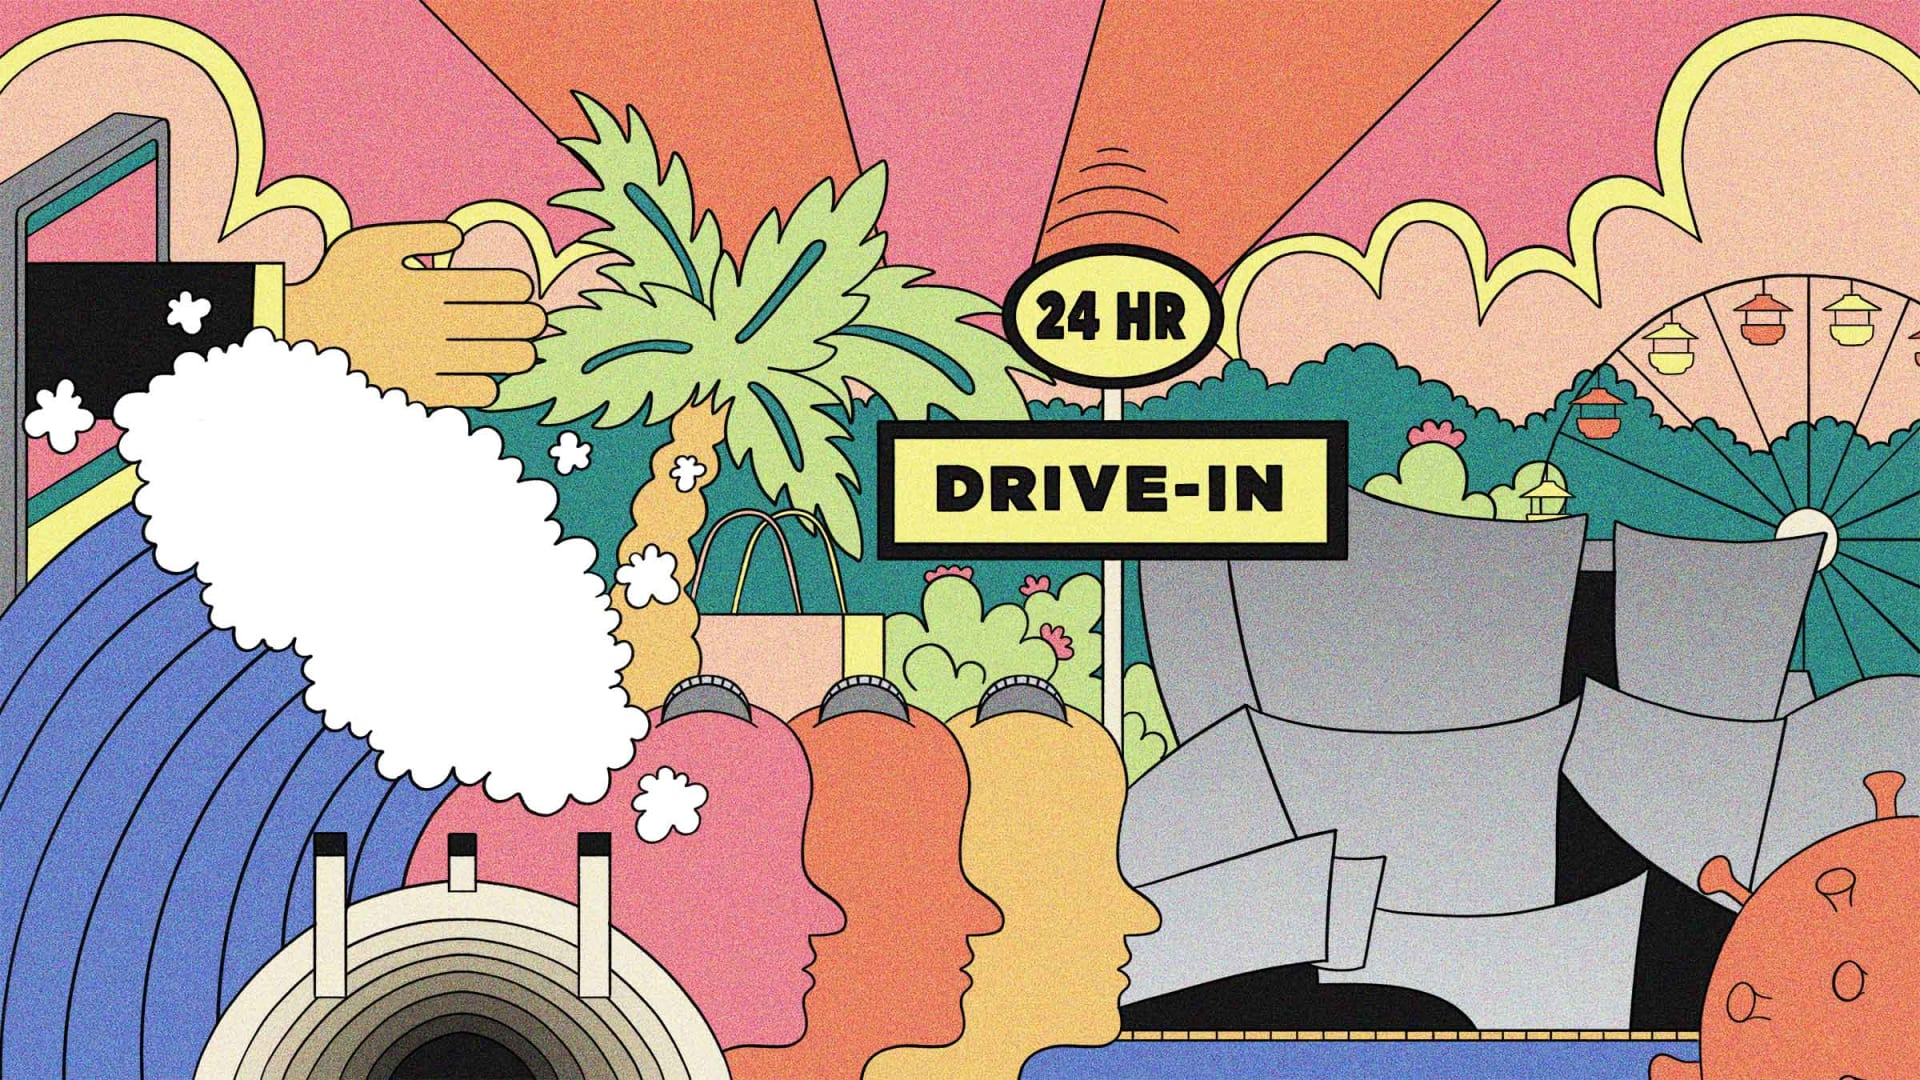 4 Reasons the L.A. Startup Ecosystem Will Thrive Post-Covid